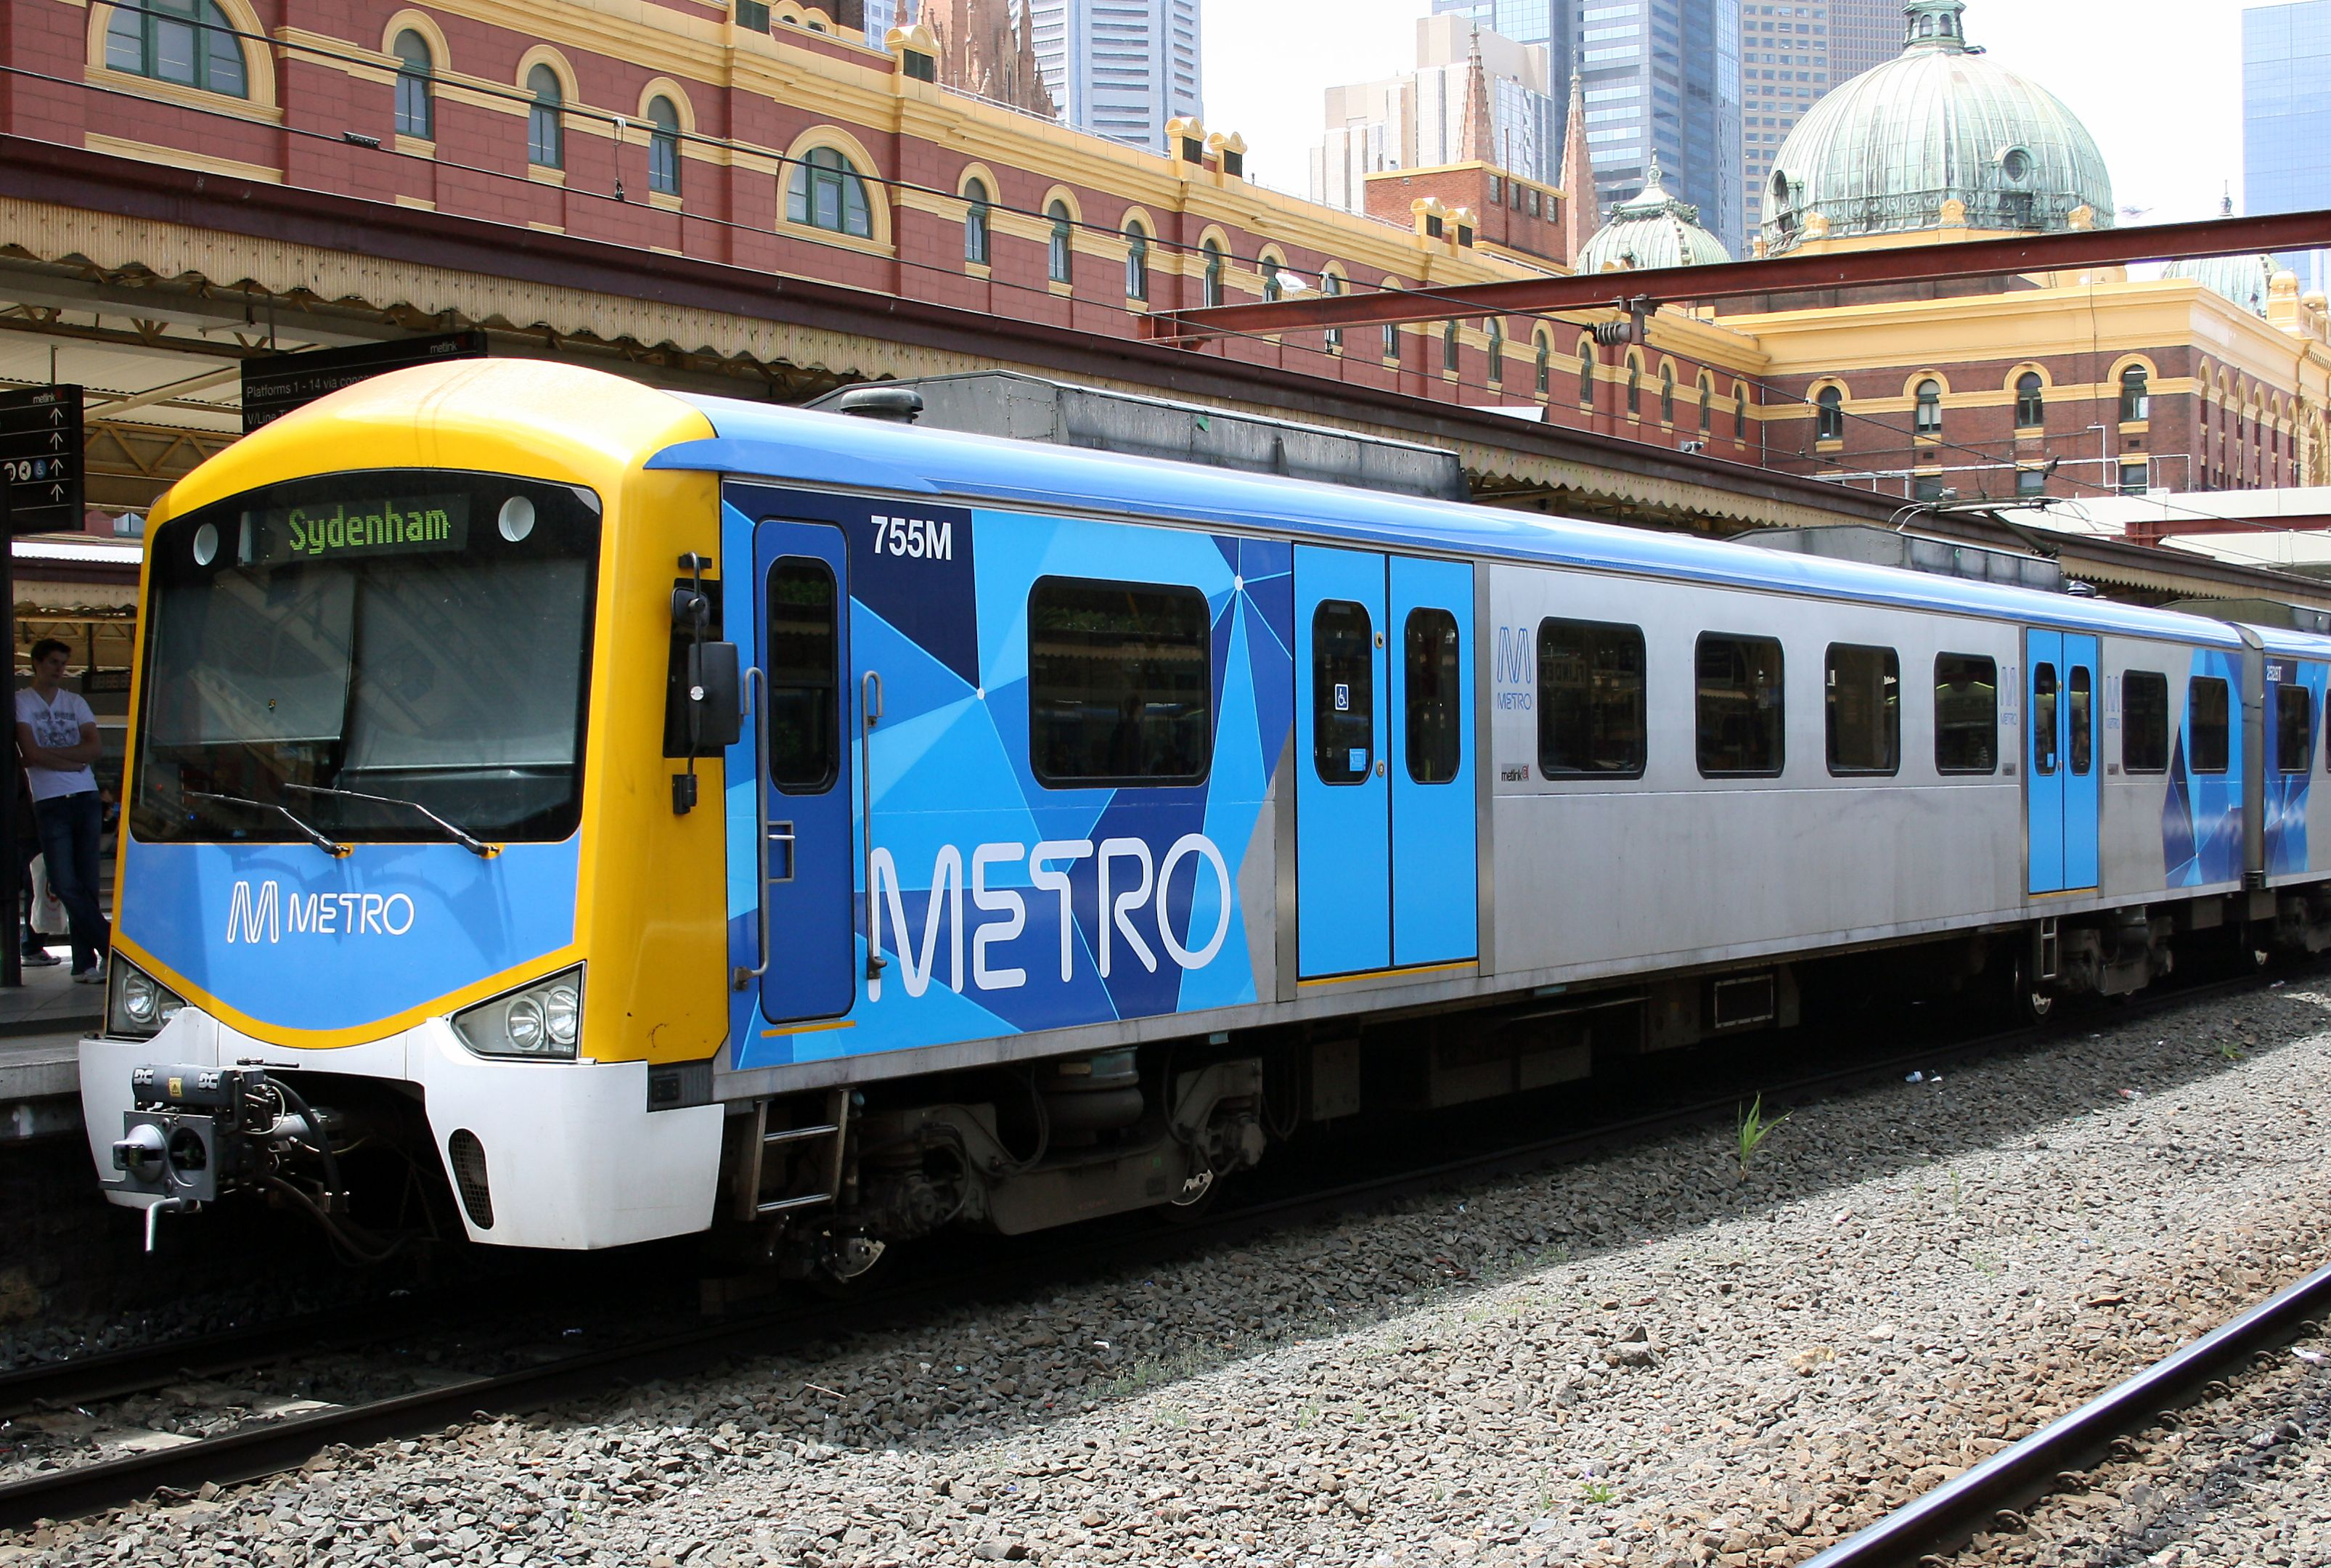 Siemens train in Metro Trains Melbourne Australia